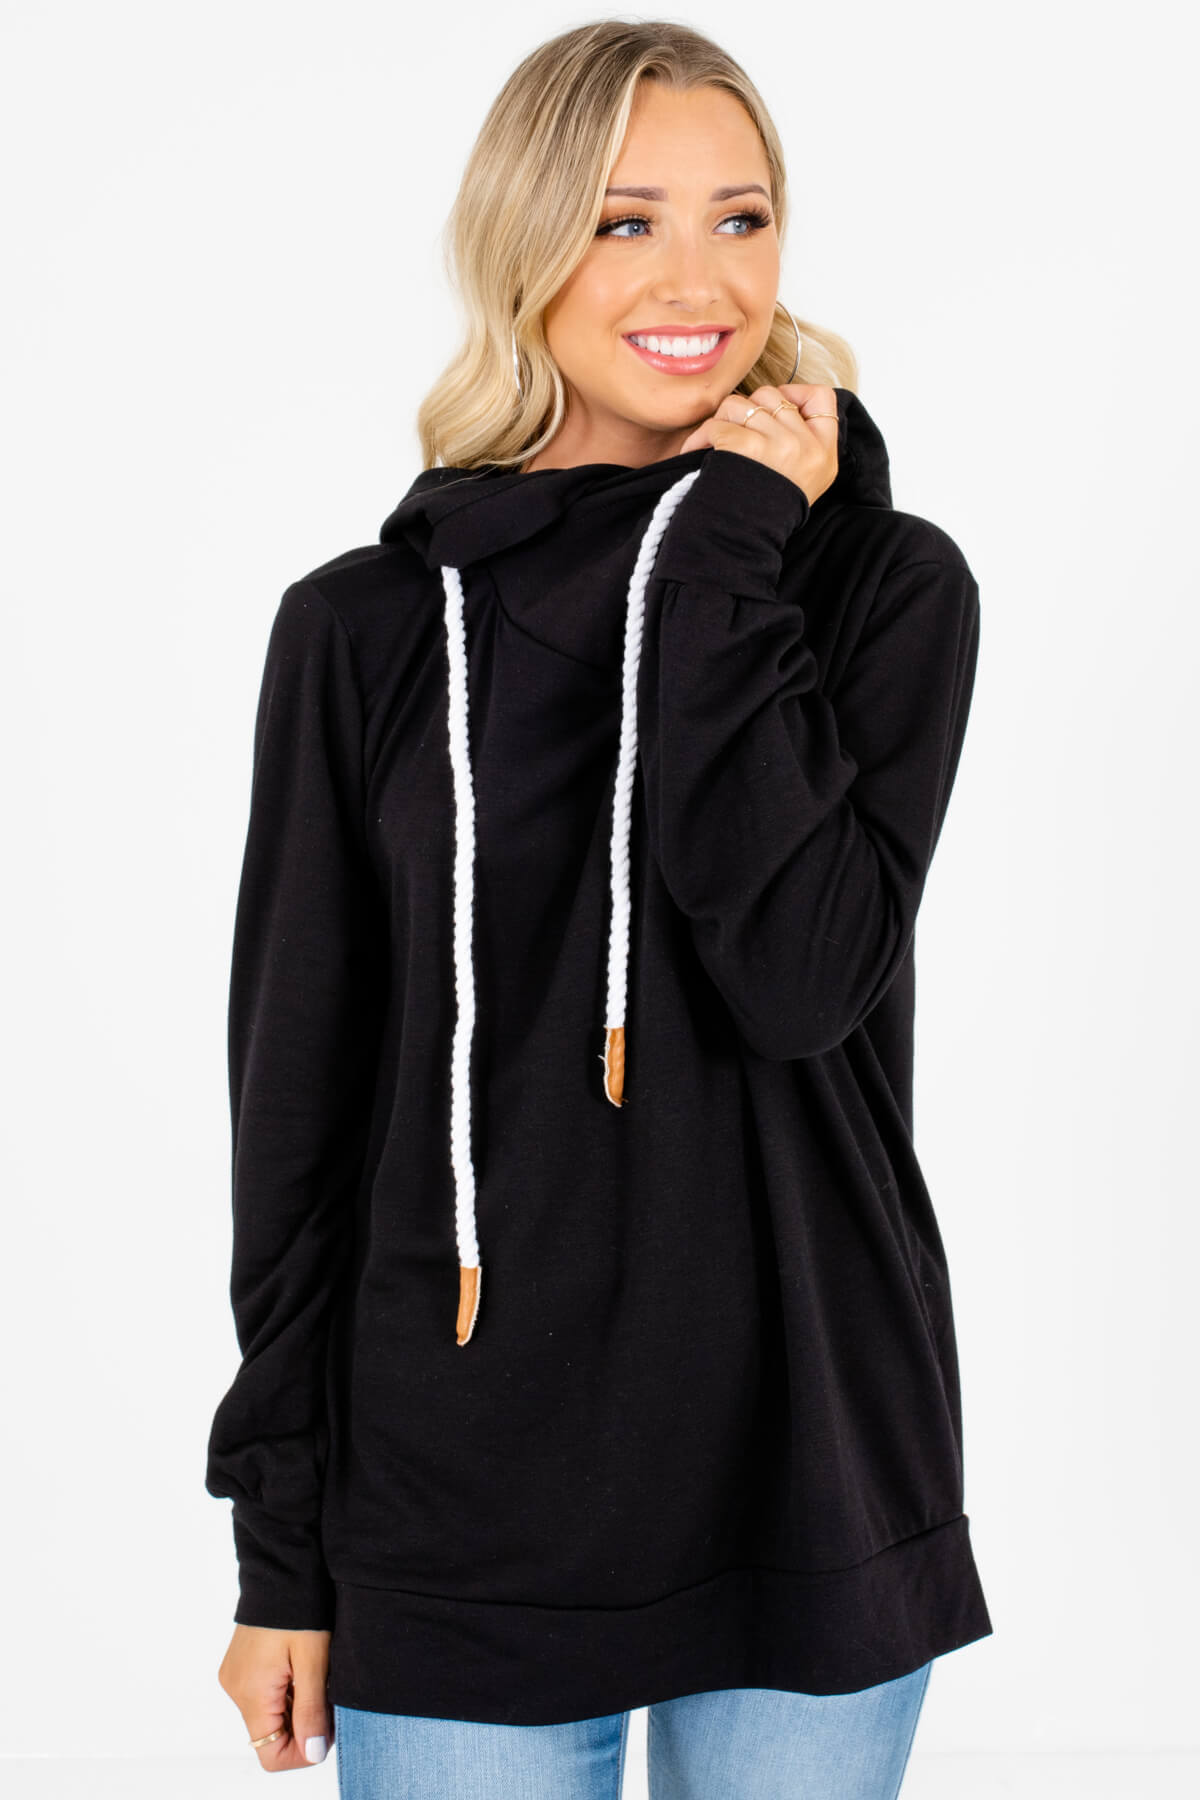 Black Soft and Stretchy Boutique Hoodies for Women